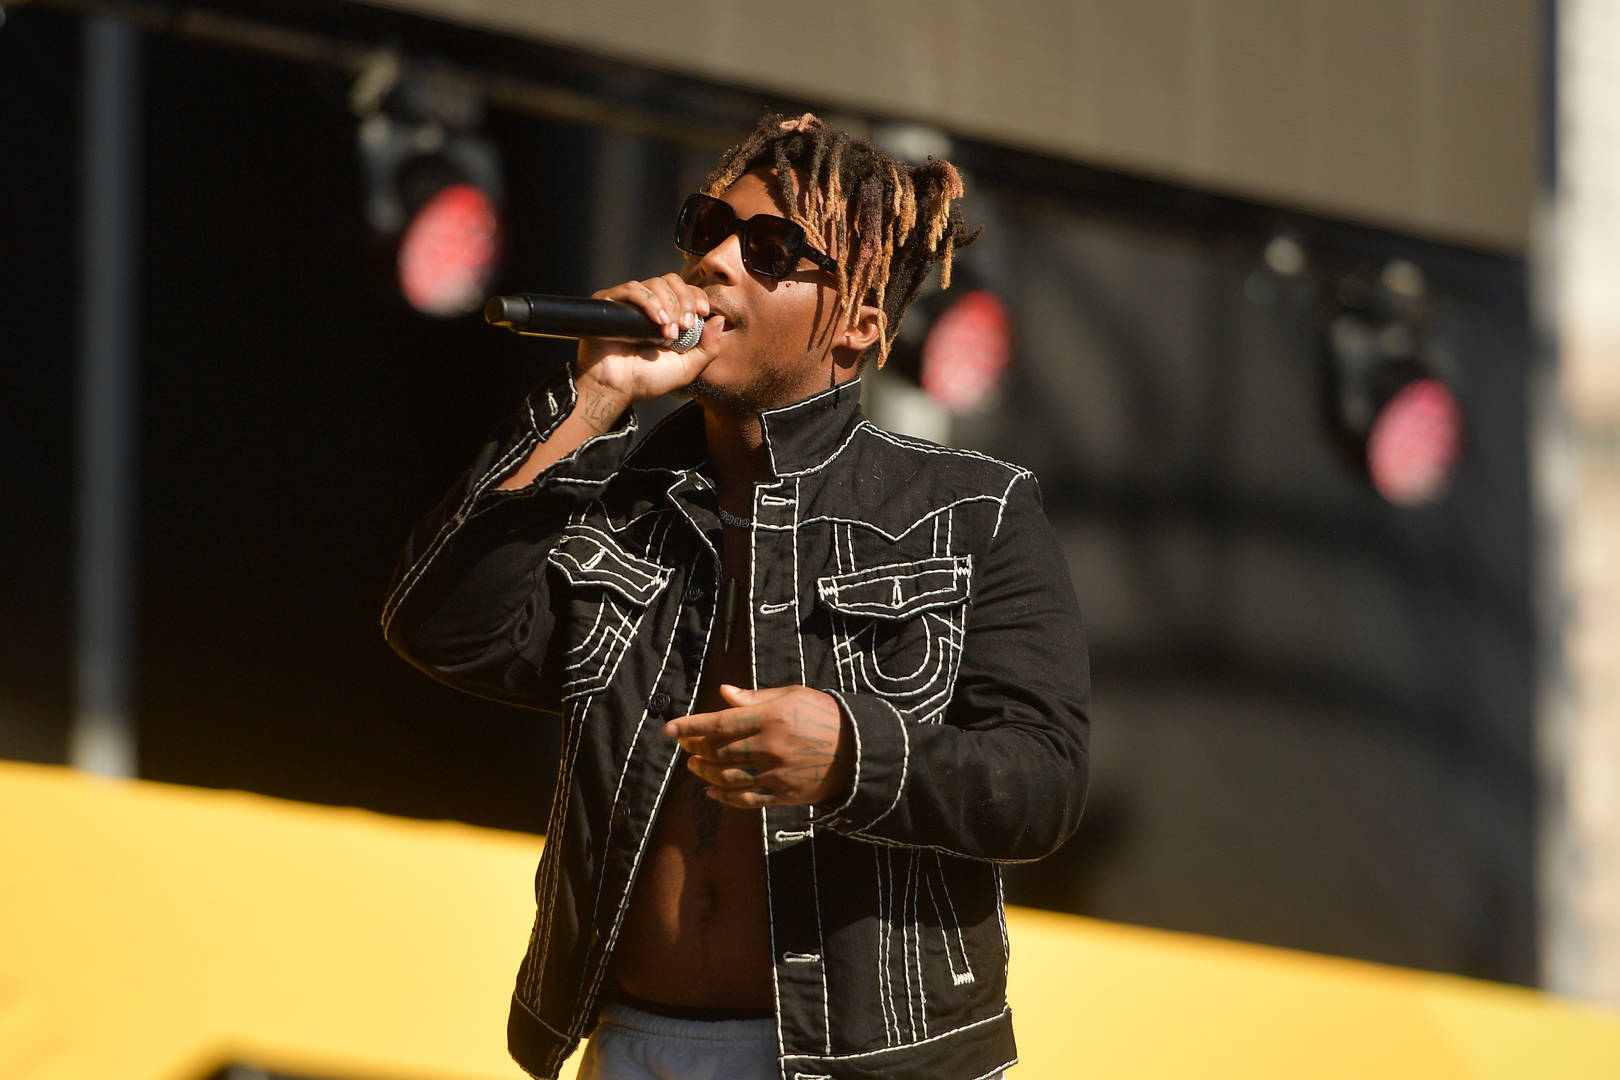 Juice WRLD's cause of death still unknown after initial autopsy